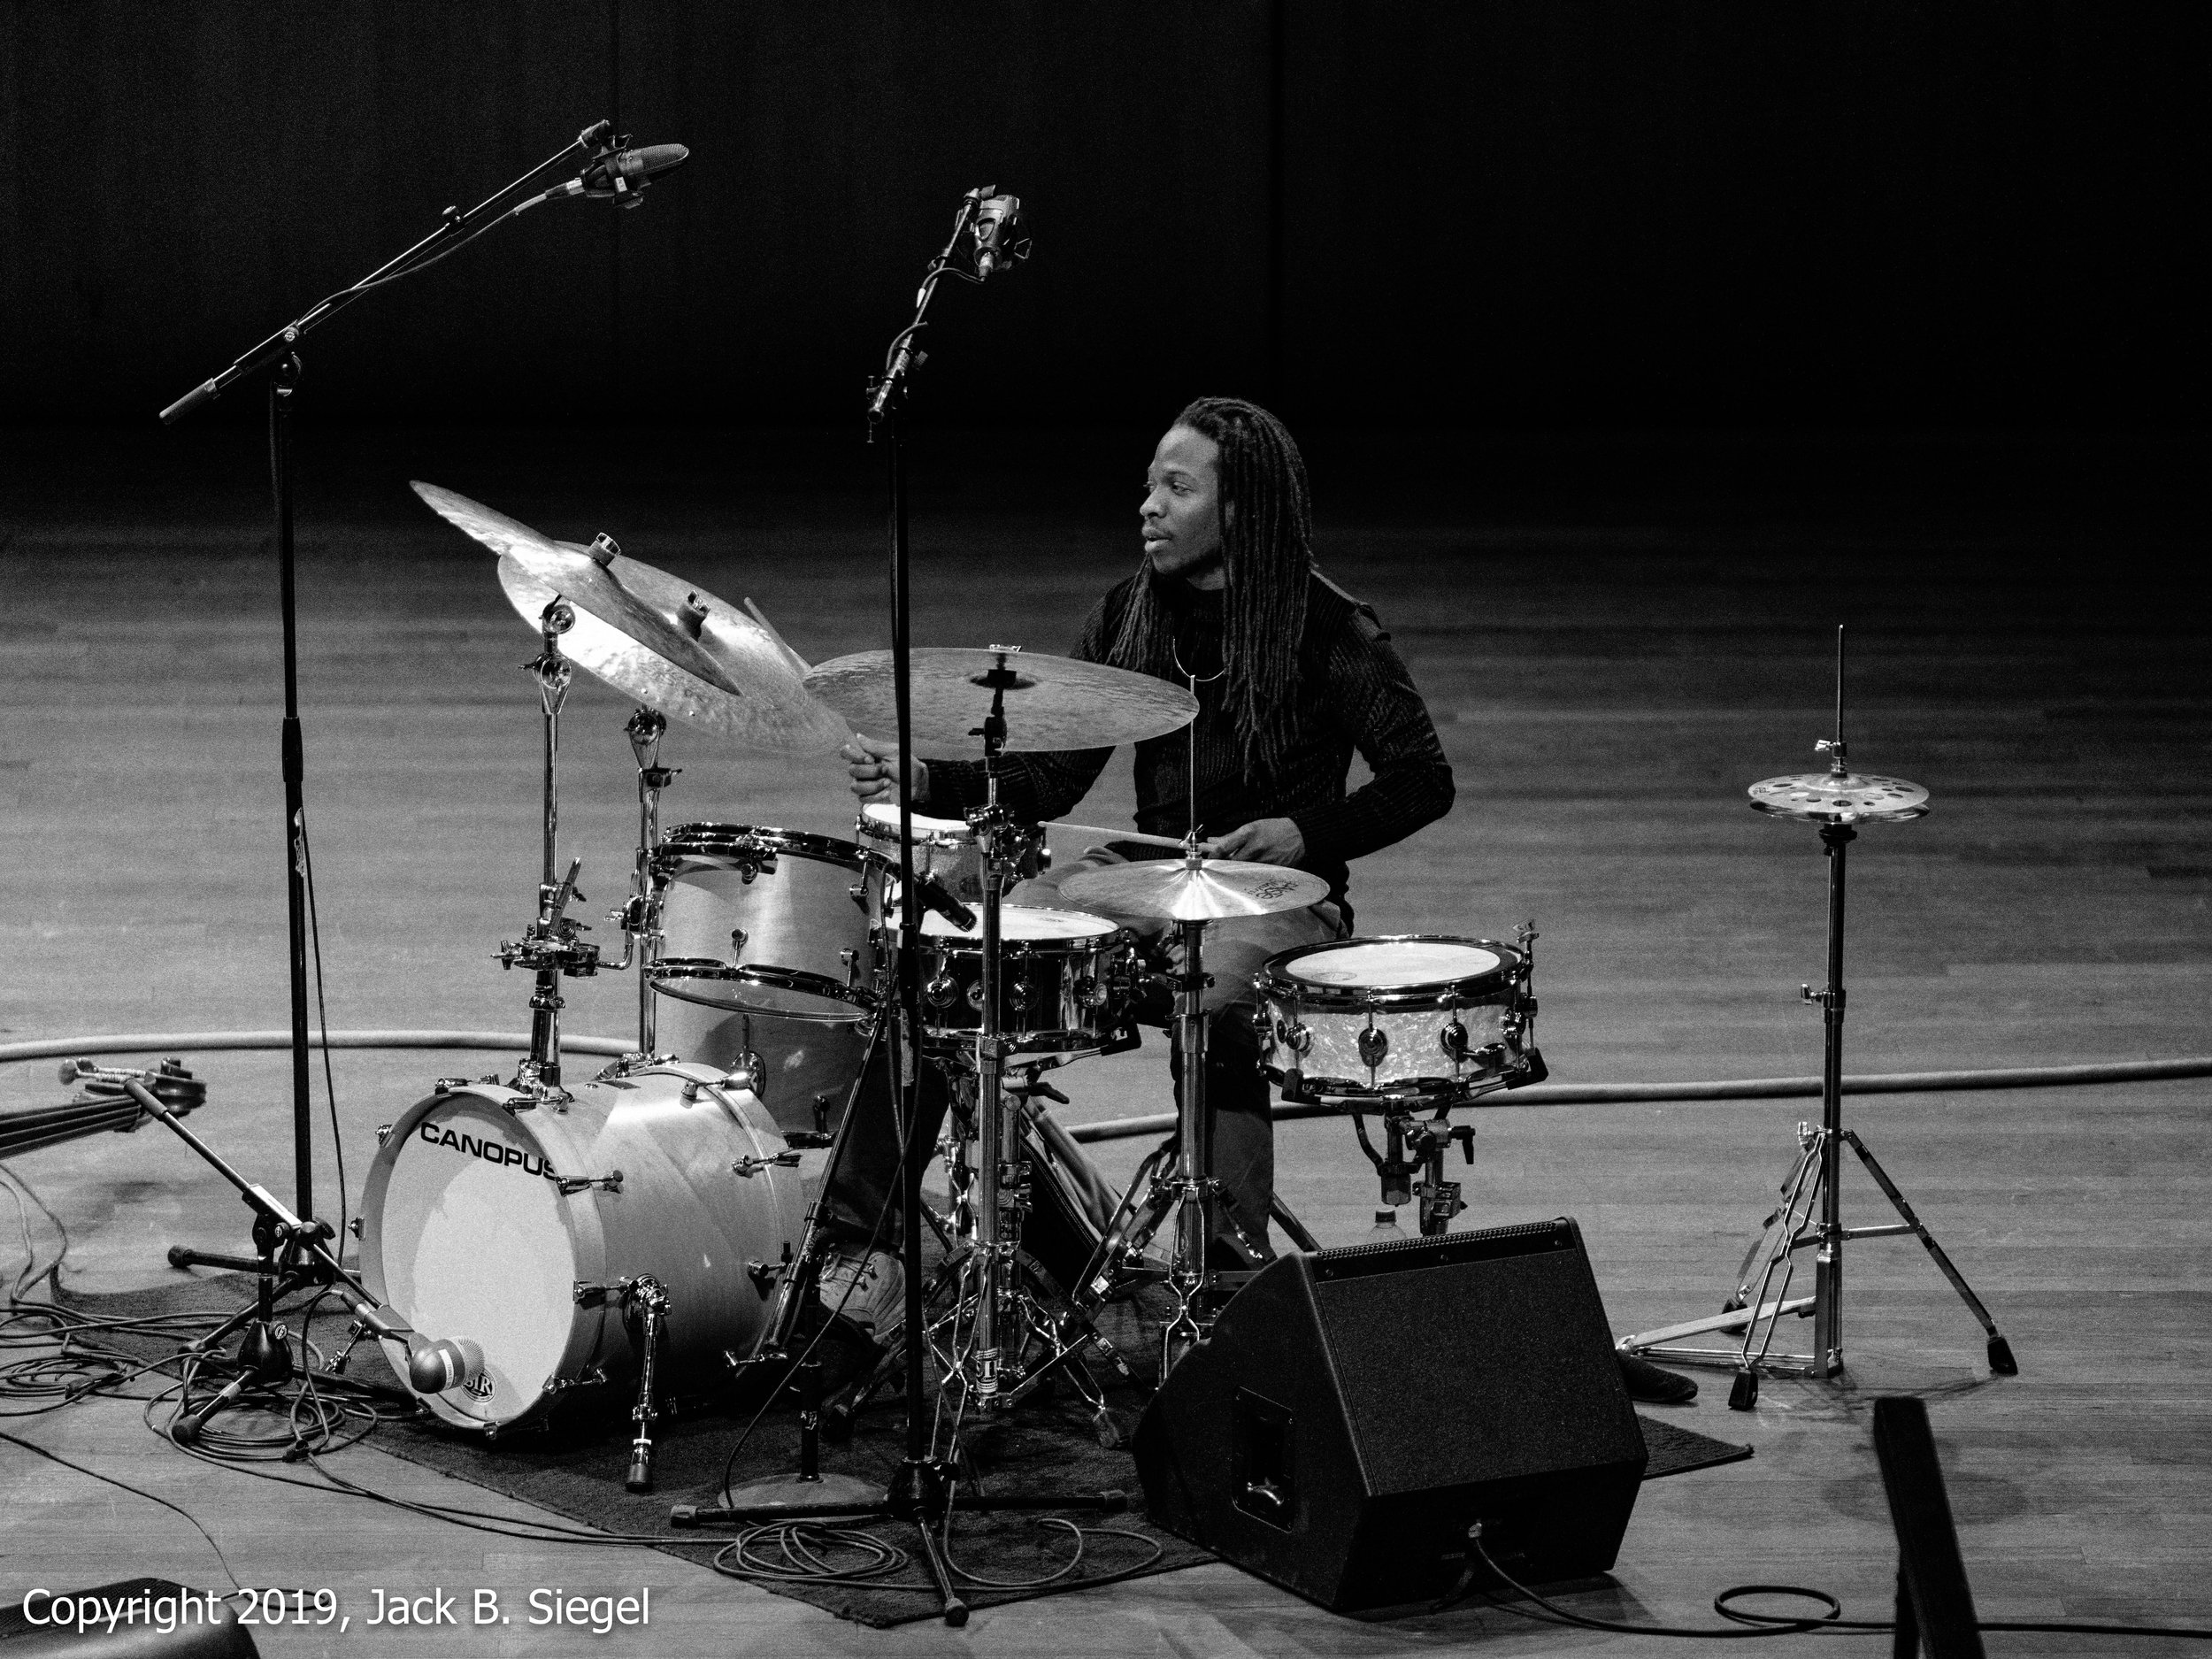 _DS20745PS__Copyright 2018 jpeg_Jonathan Pinson on Drums.jpg